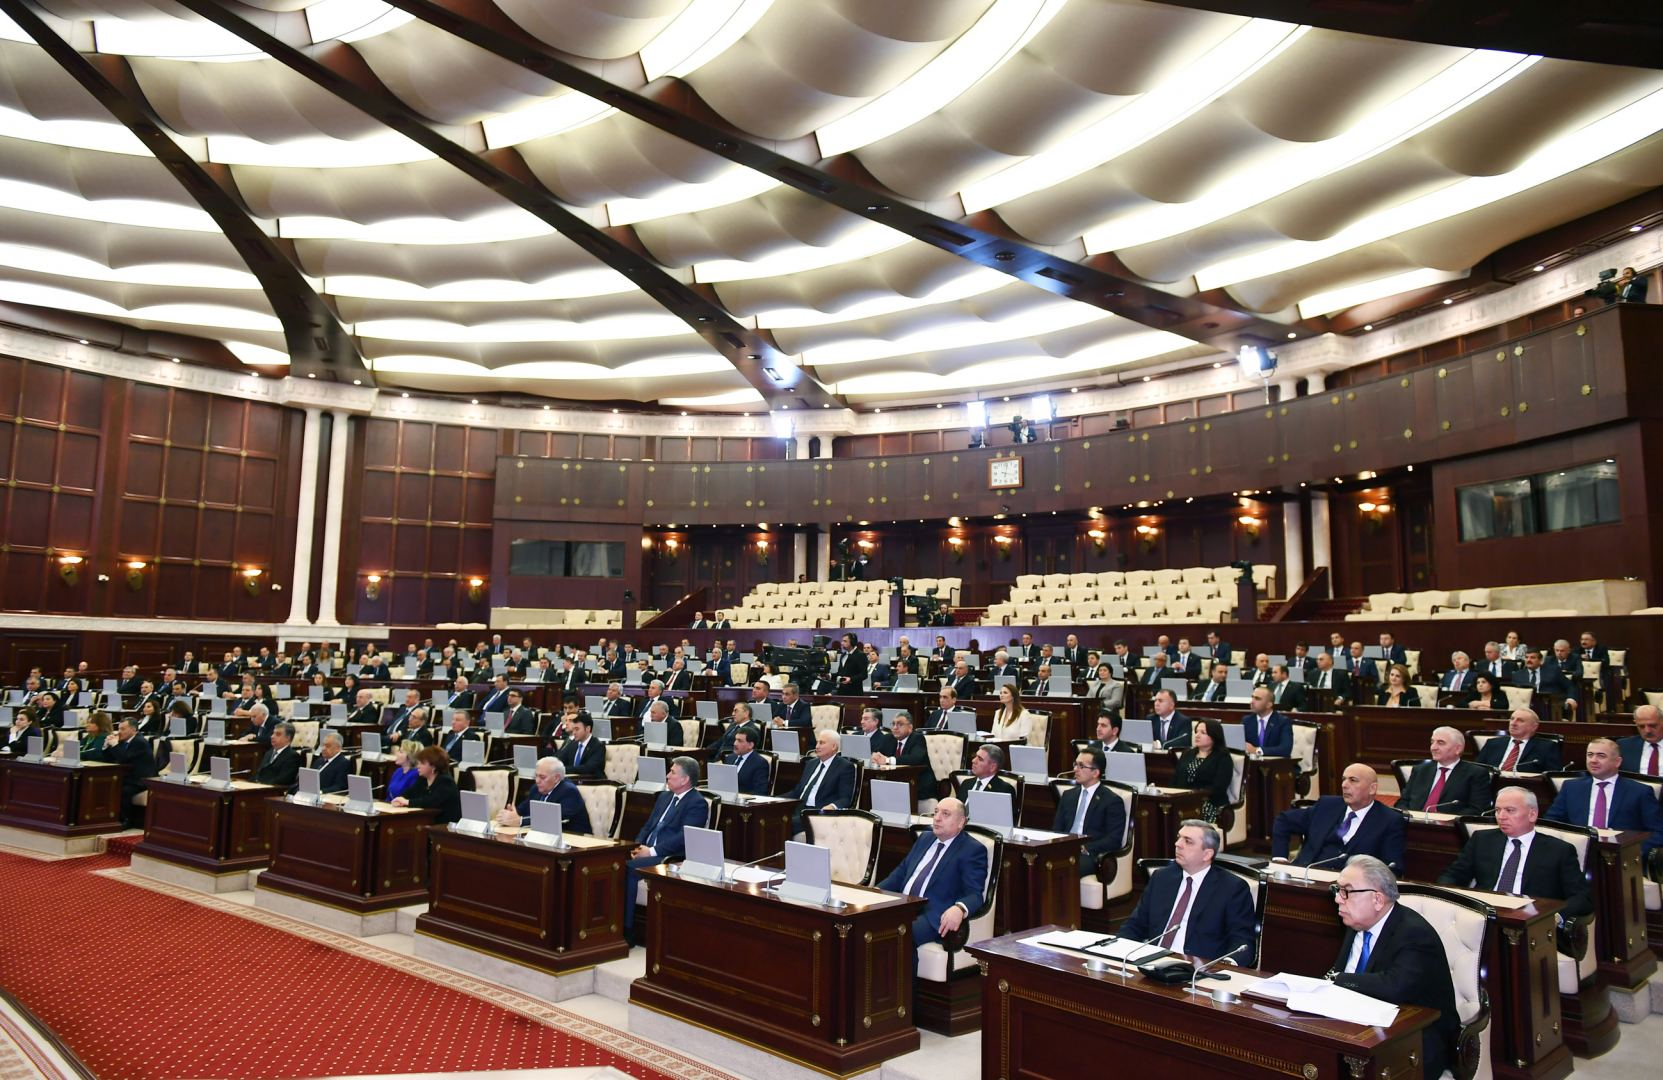 Candidacies for posts of speaker, first vice speaker of Azerbaijan's Parliament revealed